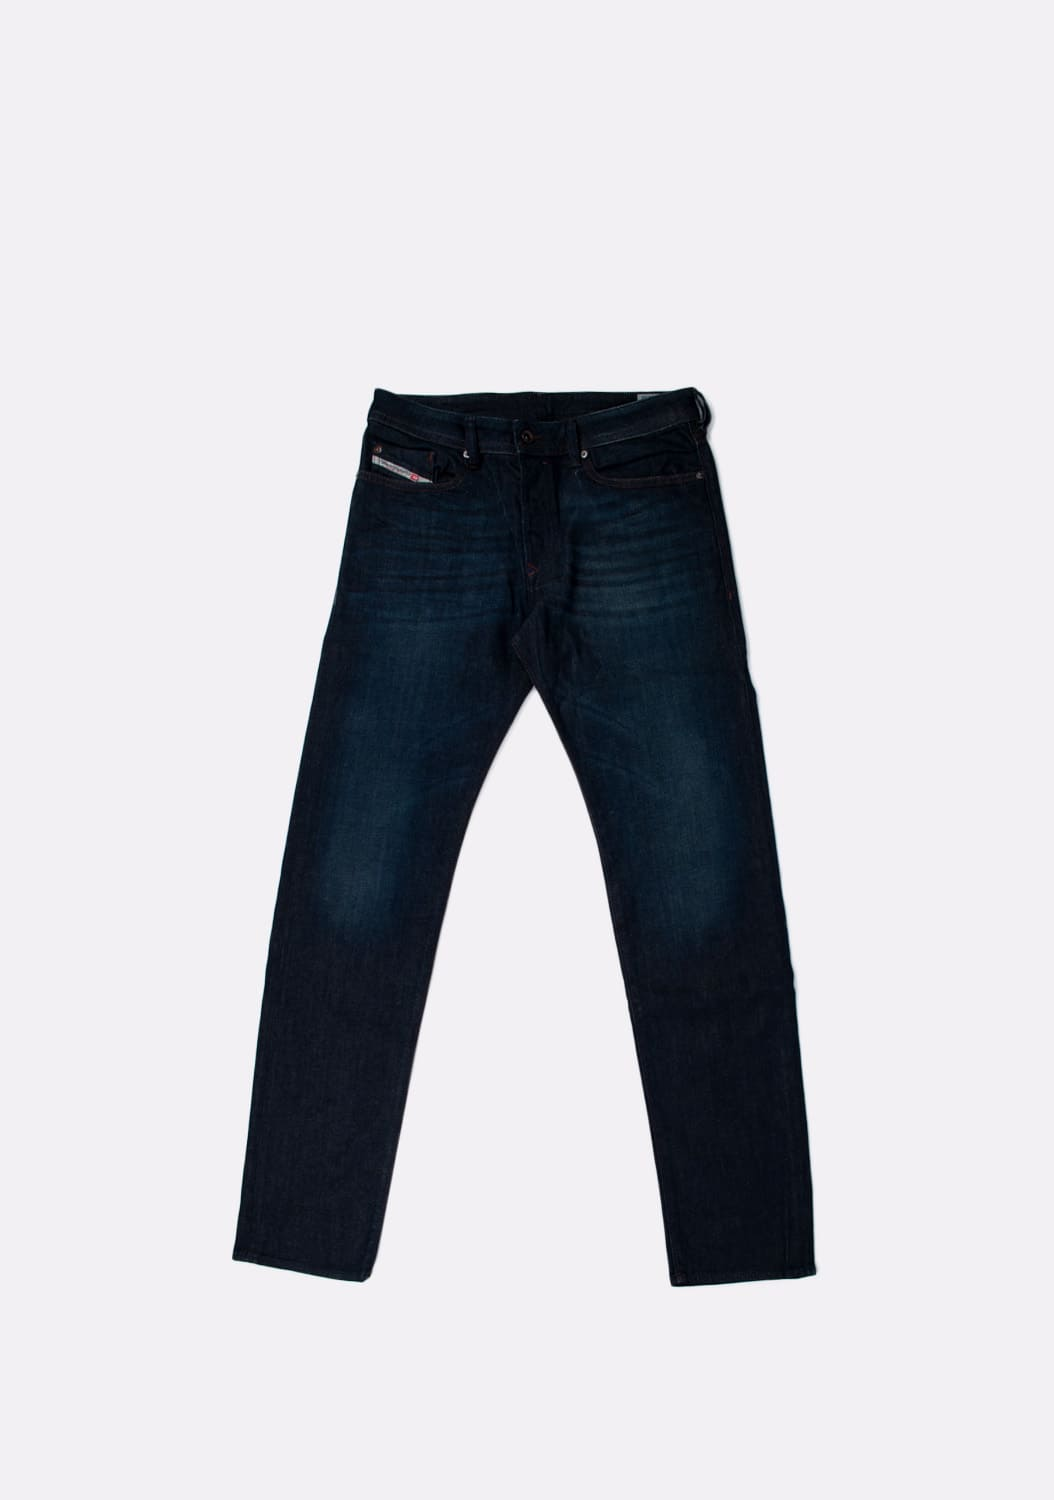 Diesel-Buster-0845G-Stretch-Regular-Slim-tapered-33-34 (2)